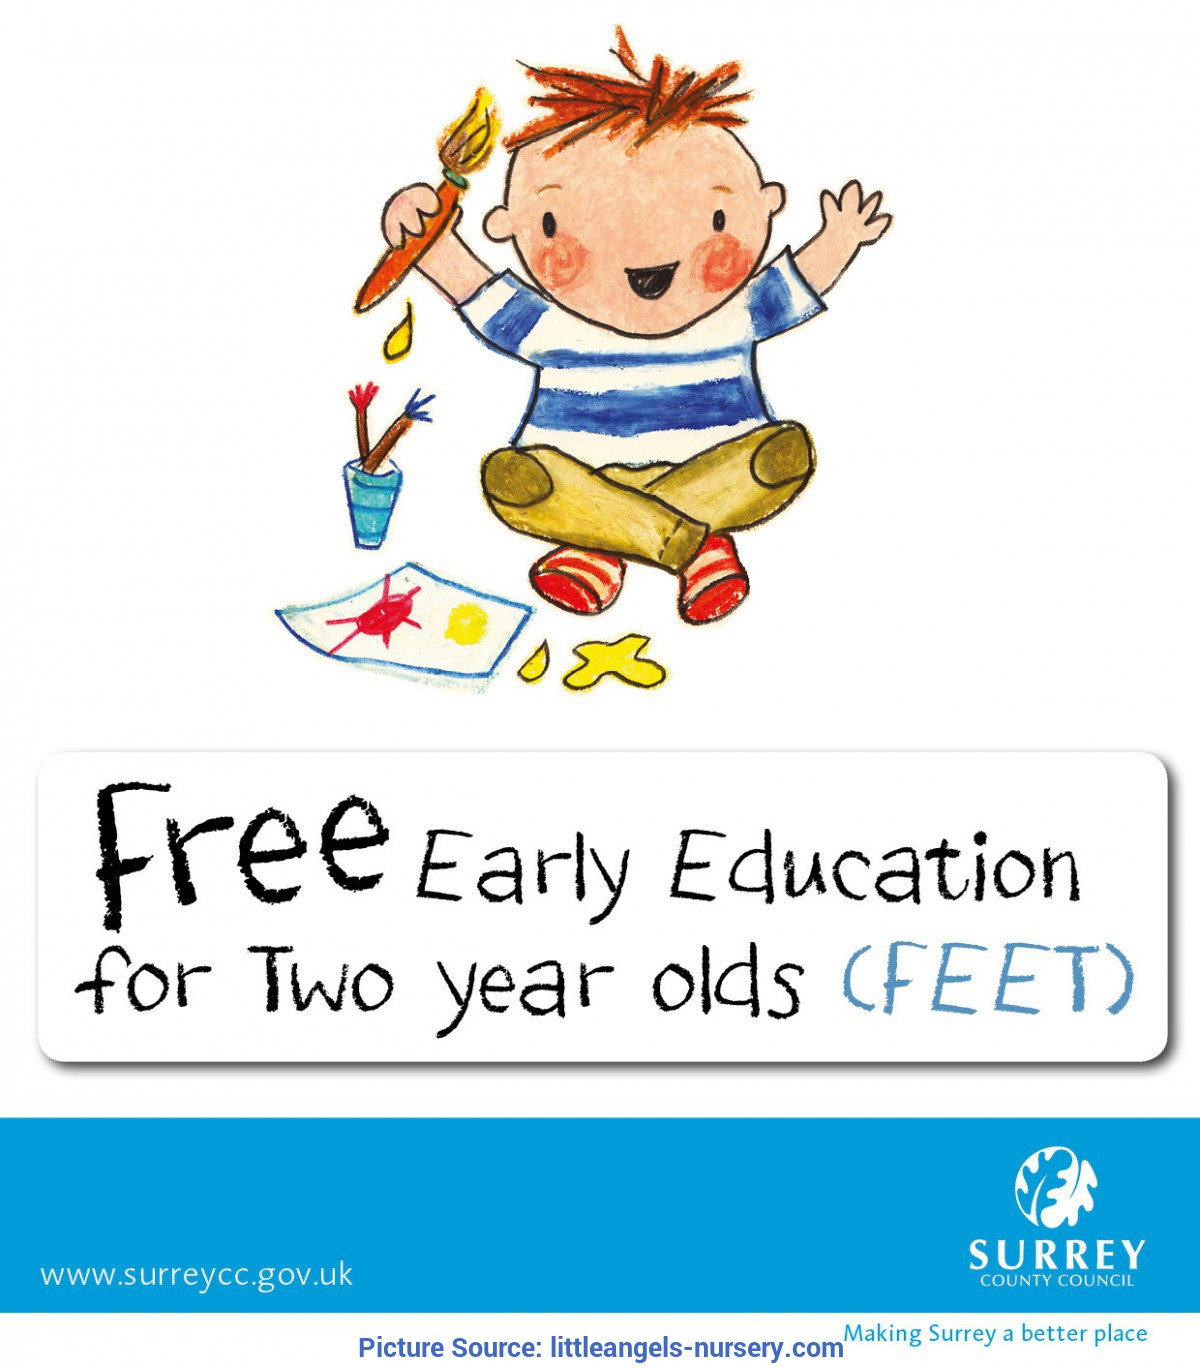 Complex Education For 2 Year Olds Feet (Free Education For 2 Year Olds) | Little Angels Nur